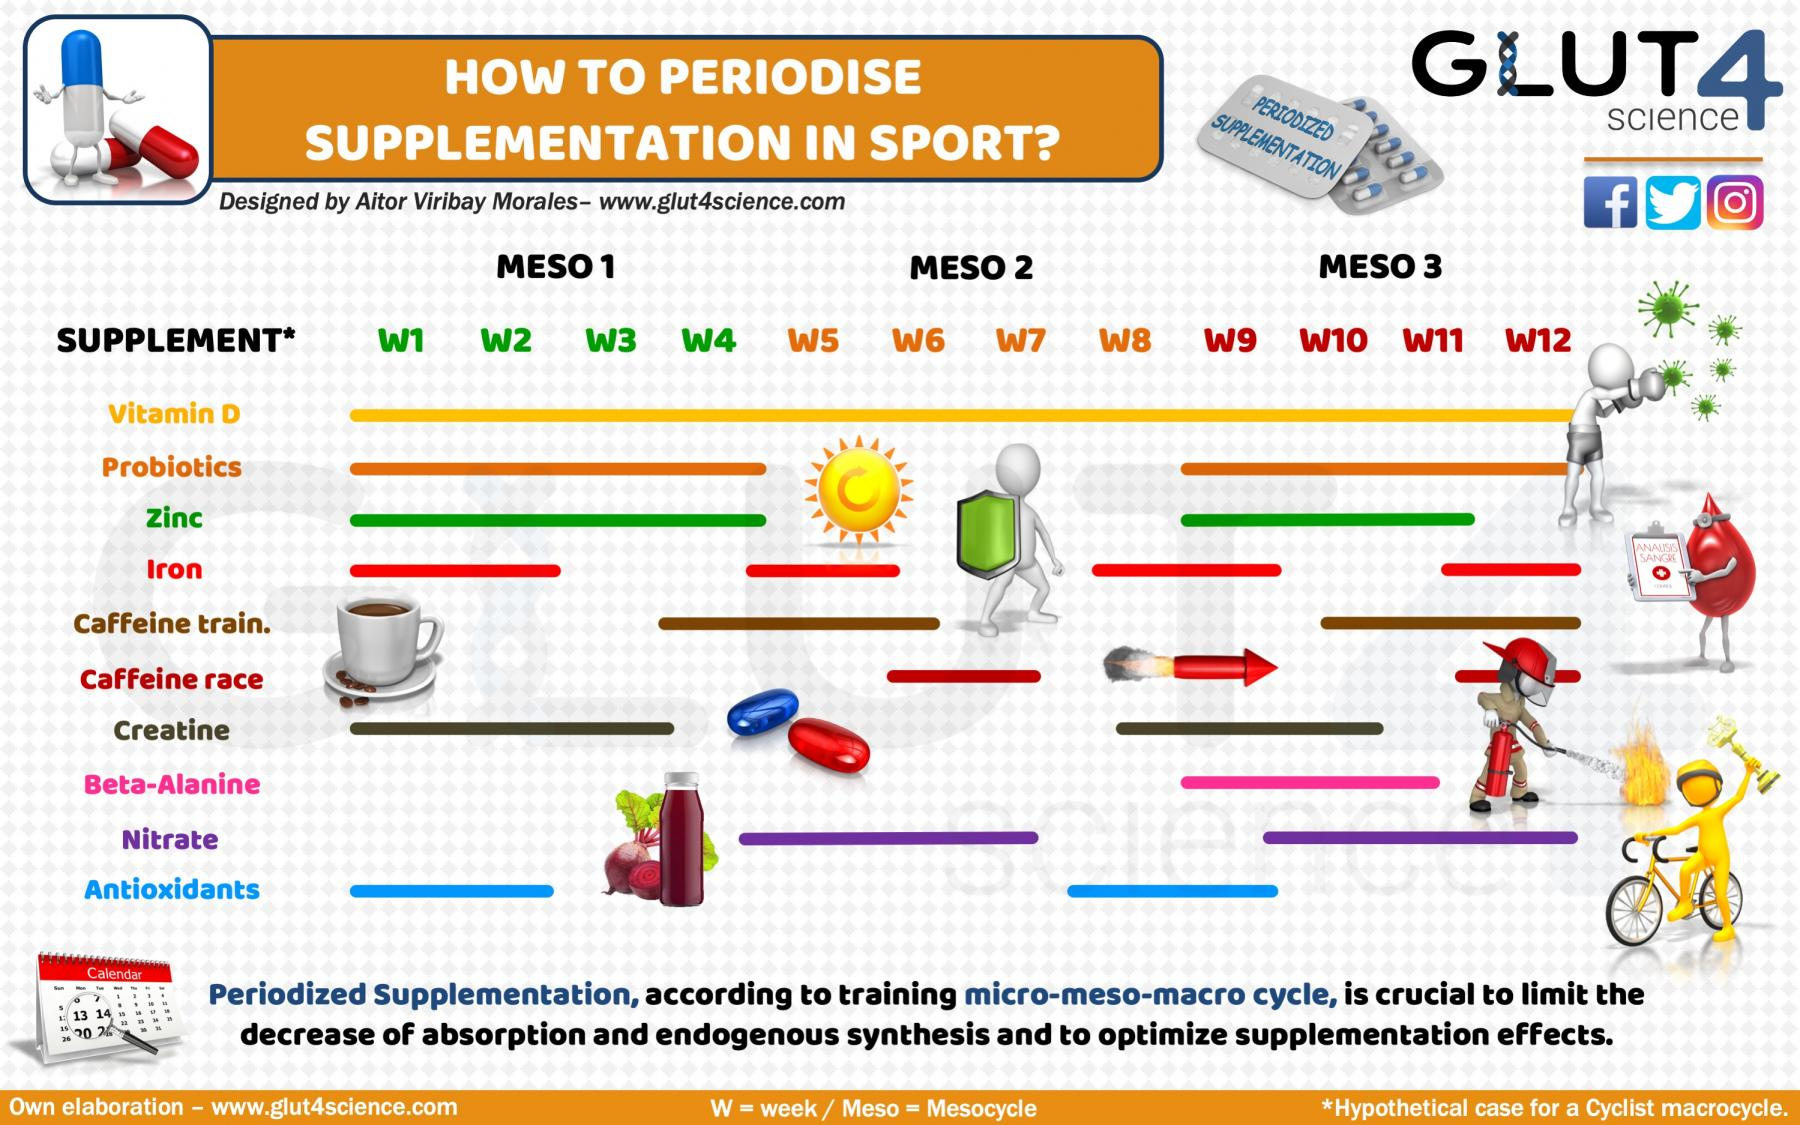 How to periodize supplementation in sport?